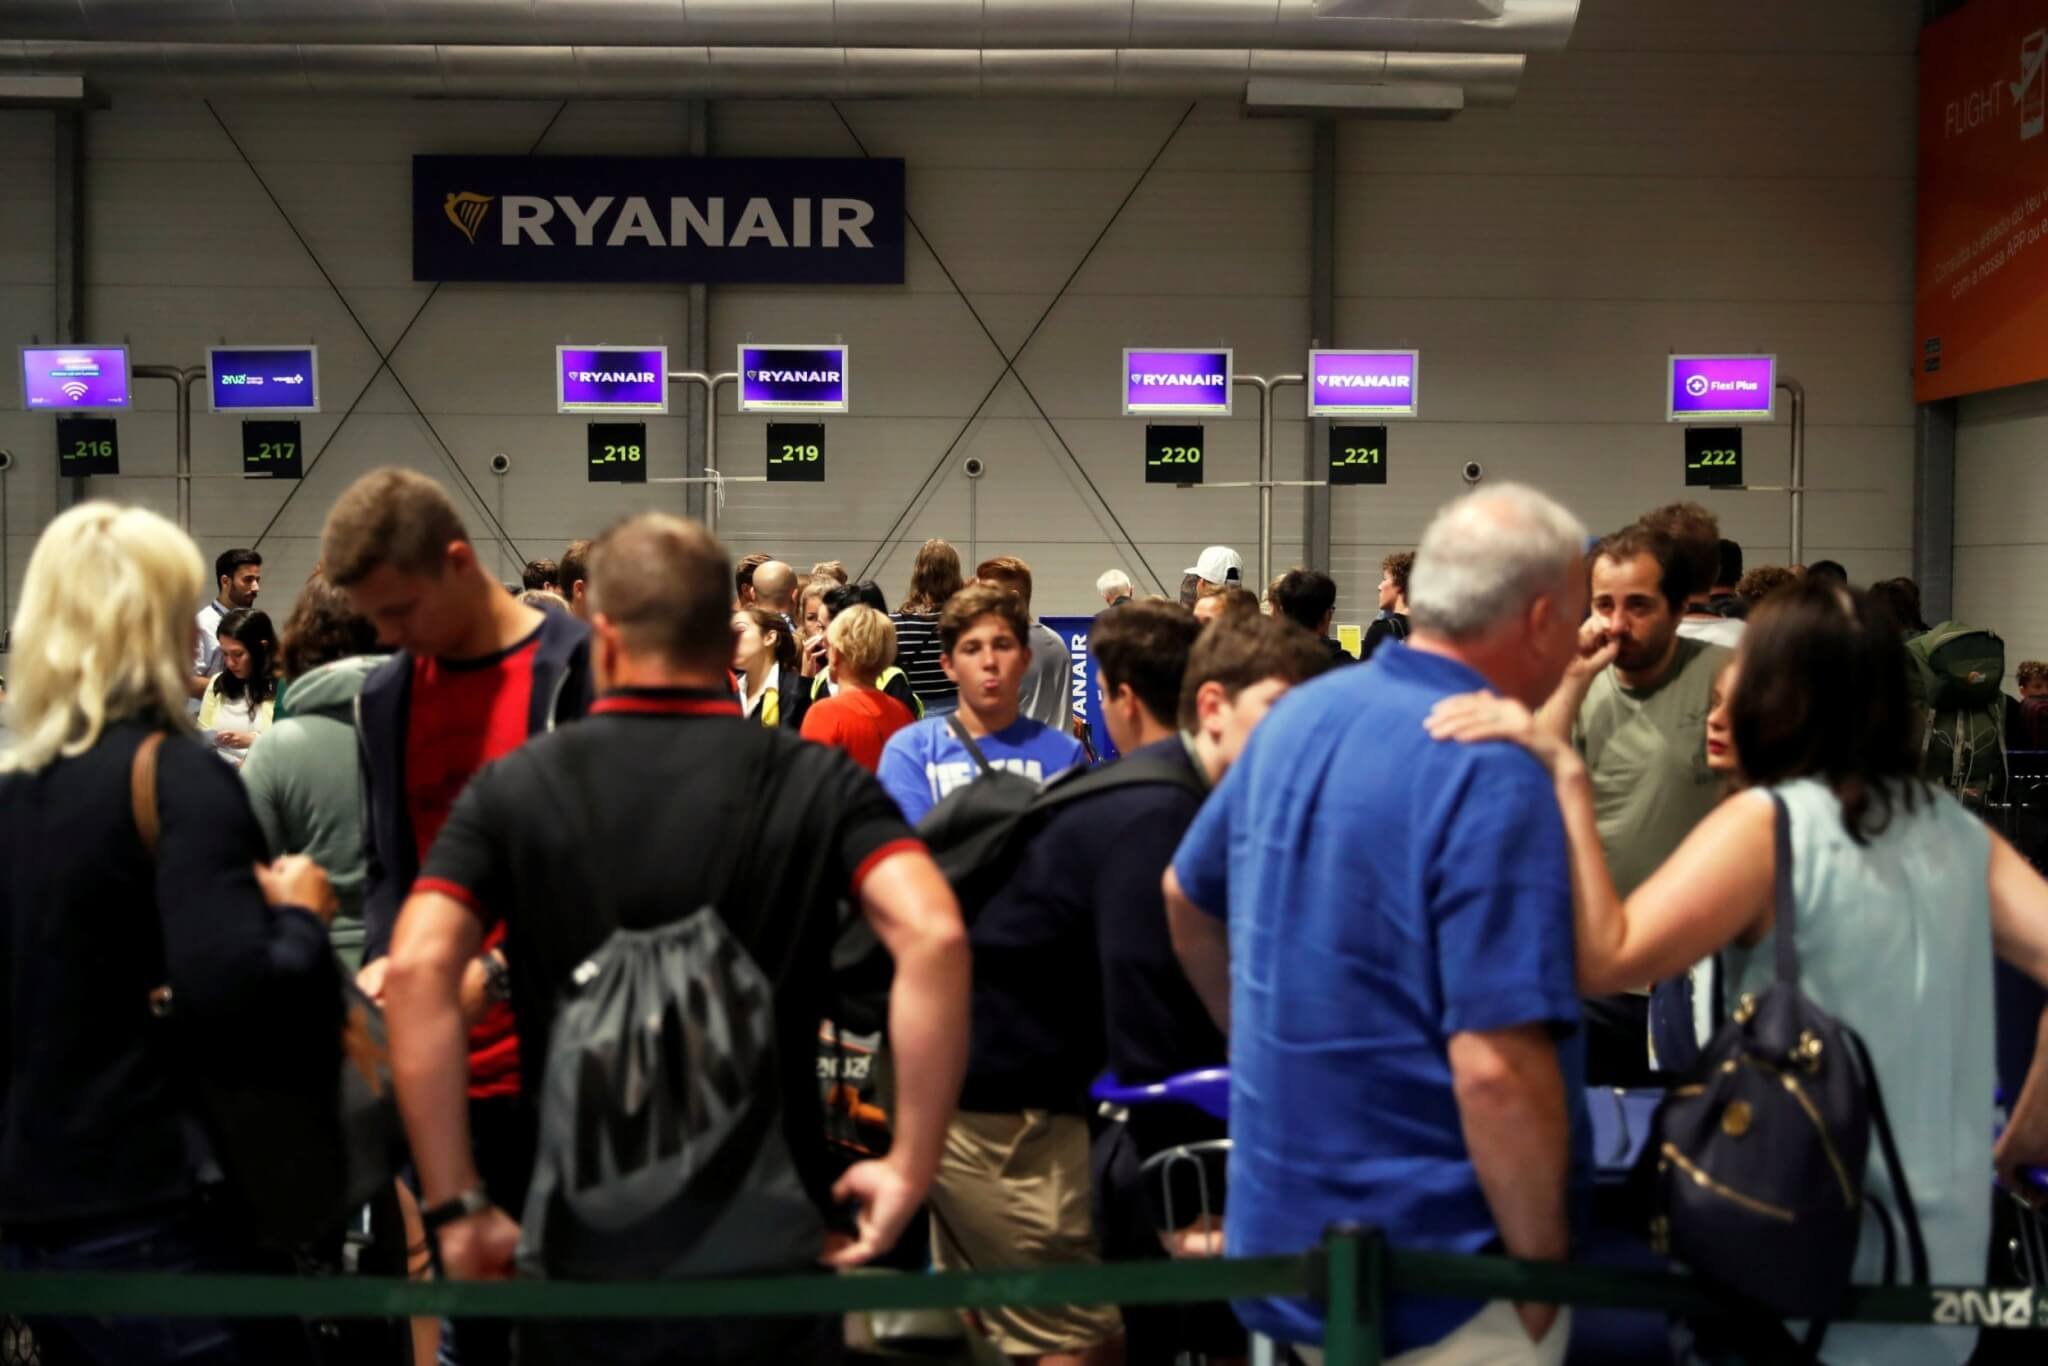 Ryanair 'systems failure' brings chaos to major airports across Europe